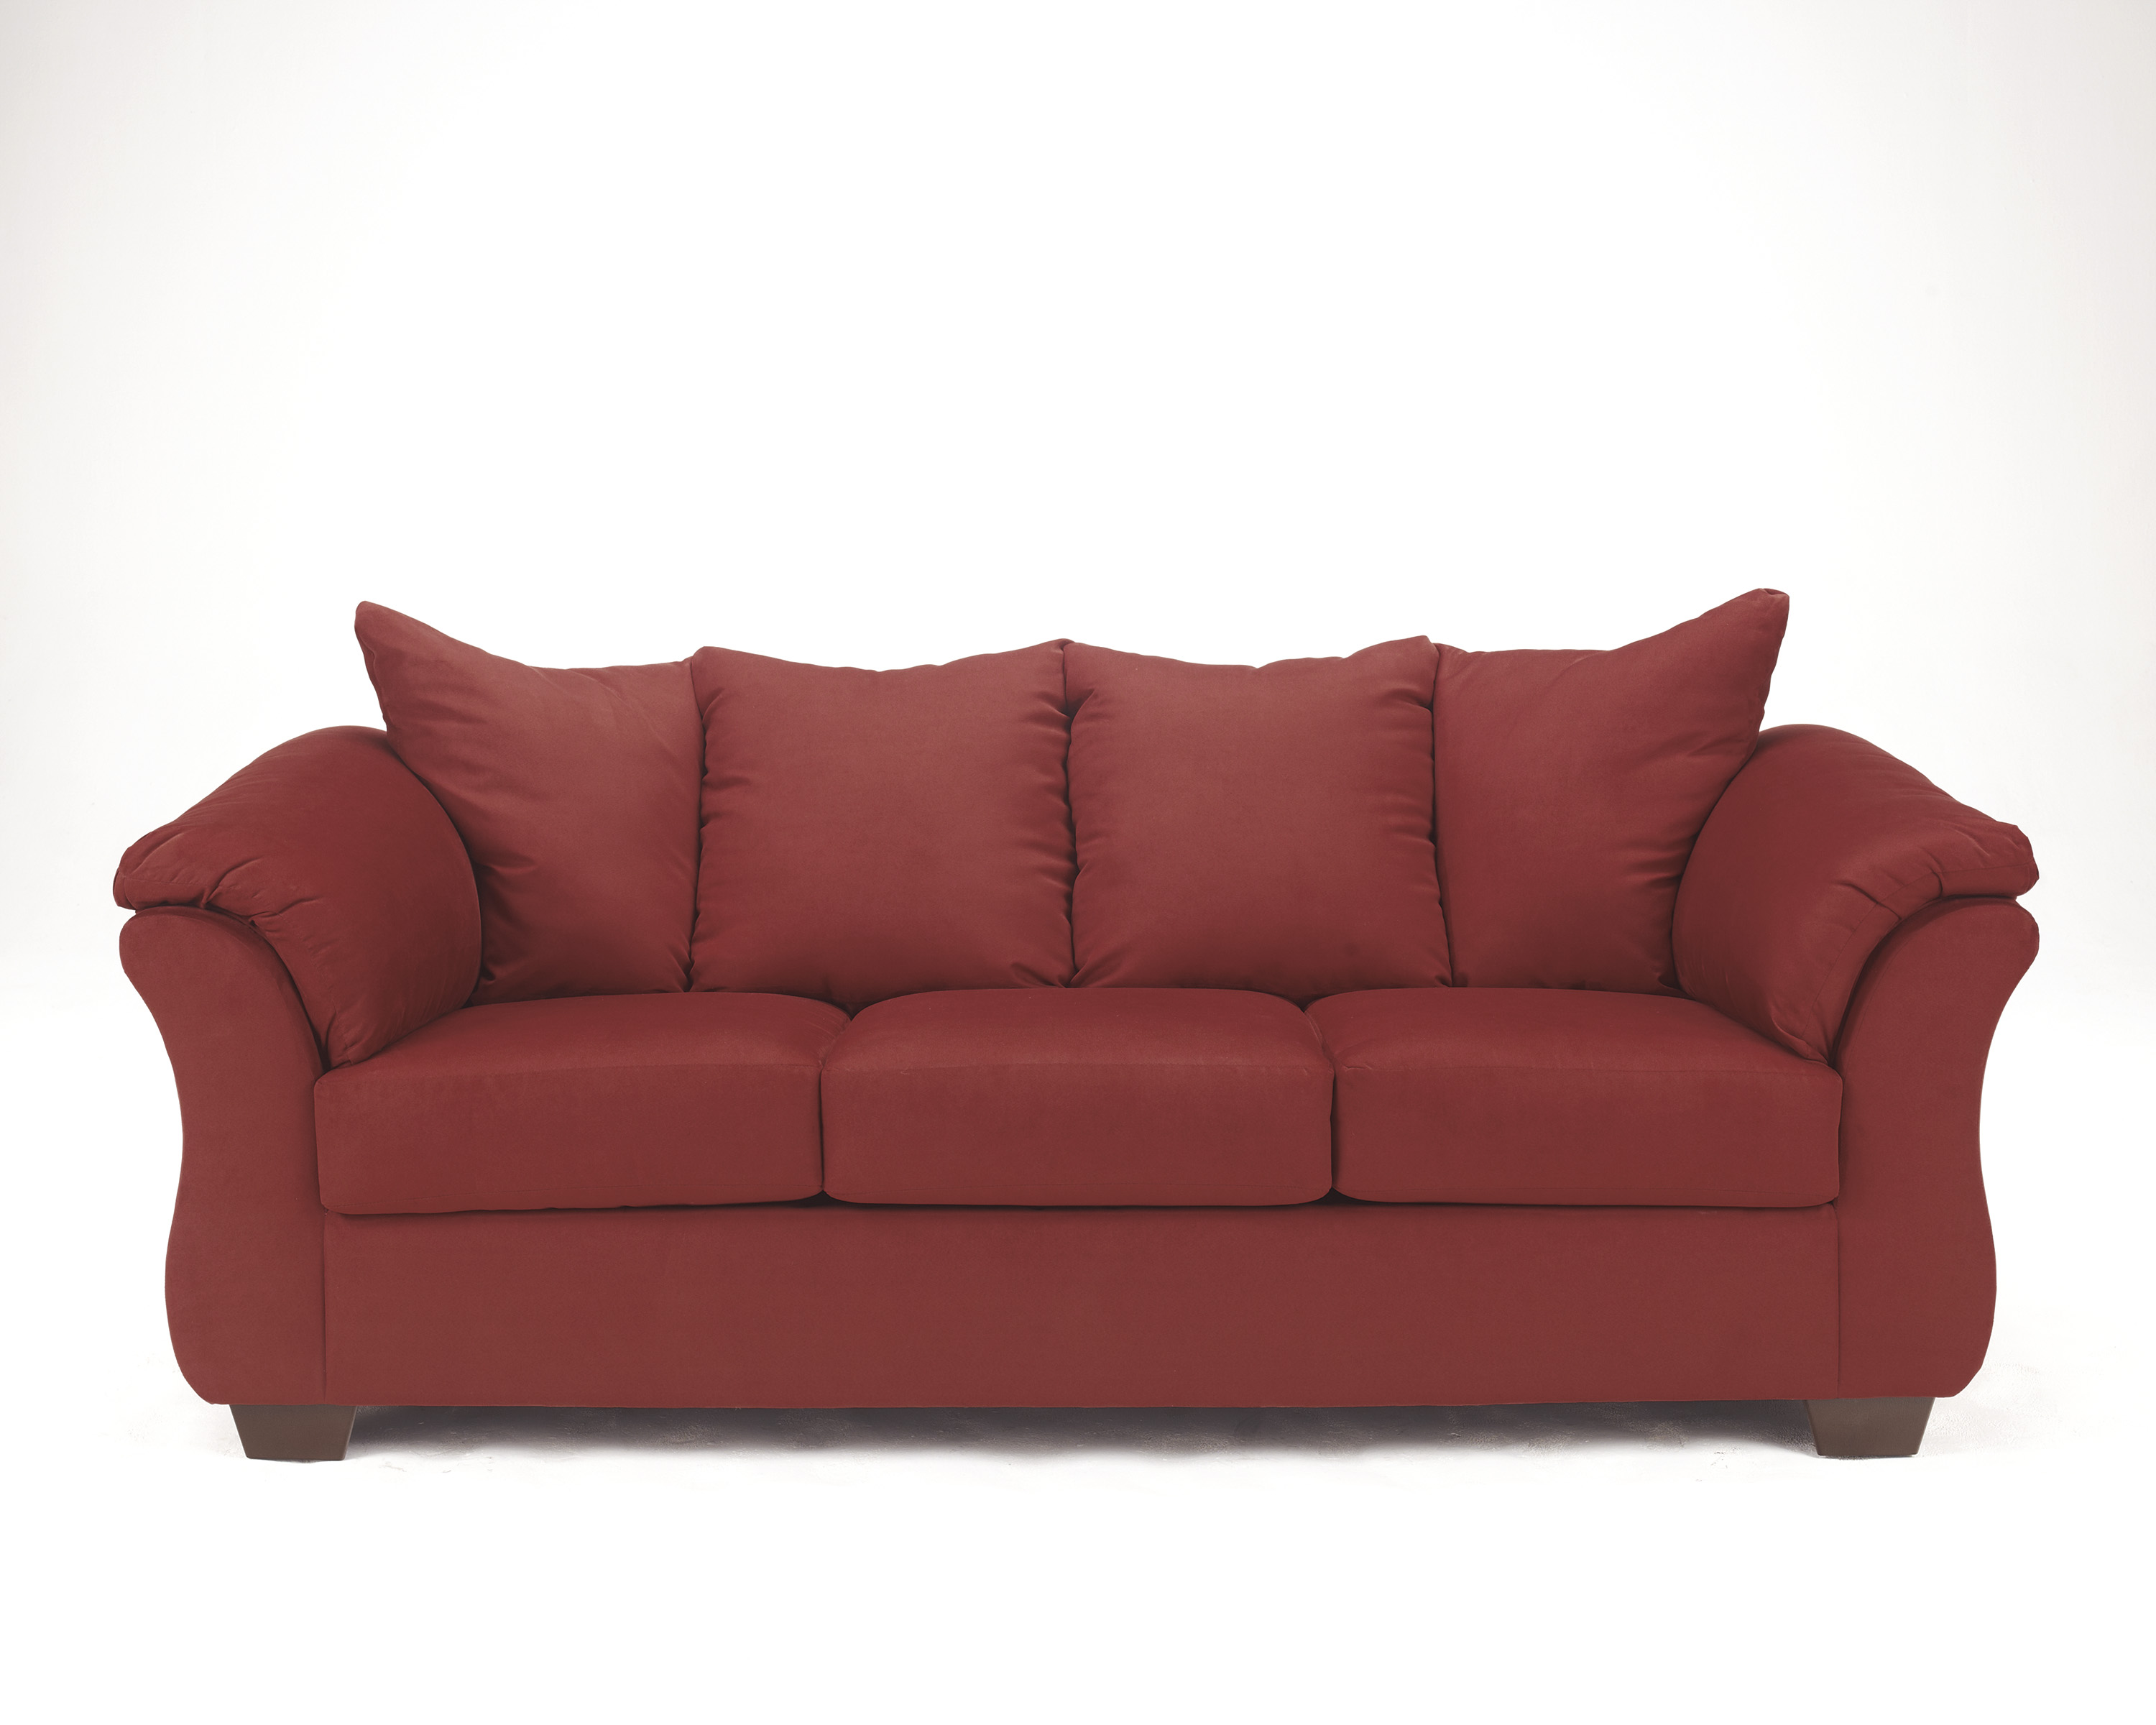 Fantastic Ashley Darcy Salsa Sofa Download Free Architecture Designs Intelgarnamadebymaigaardcom